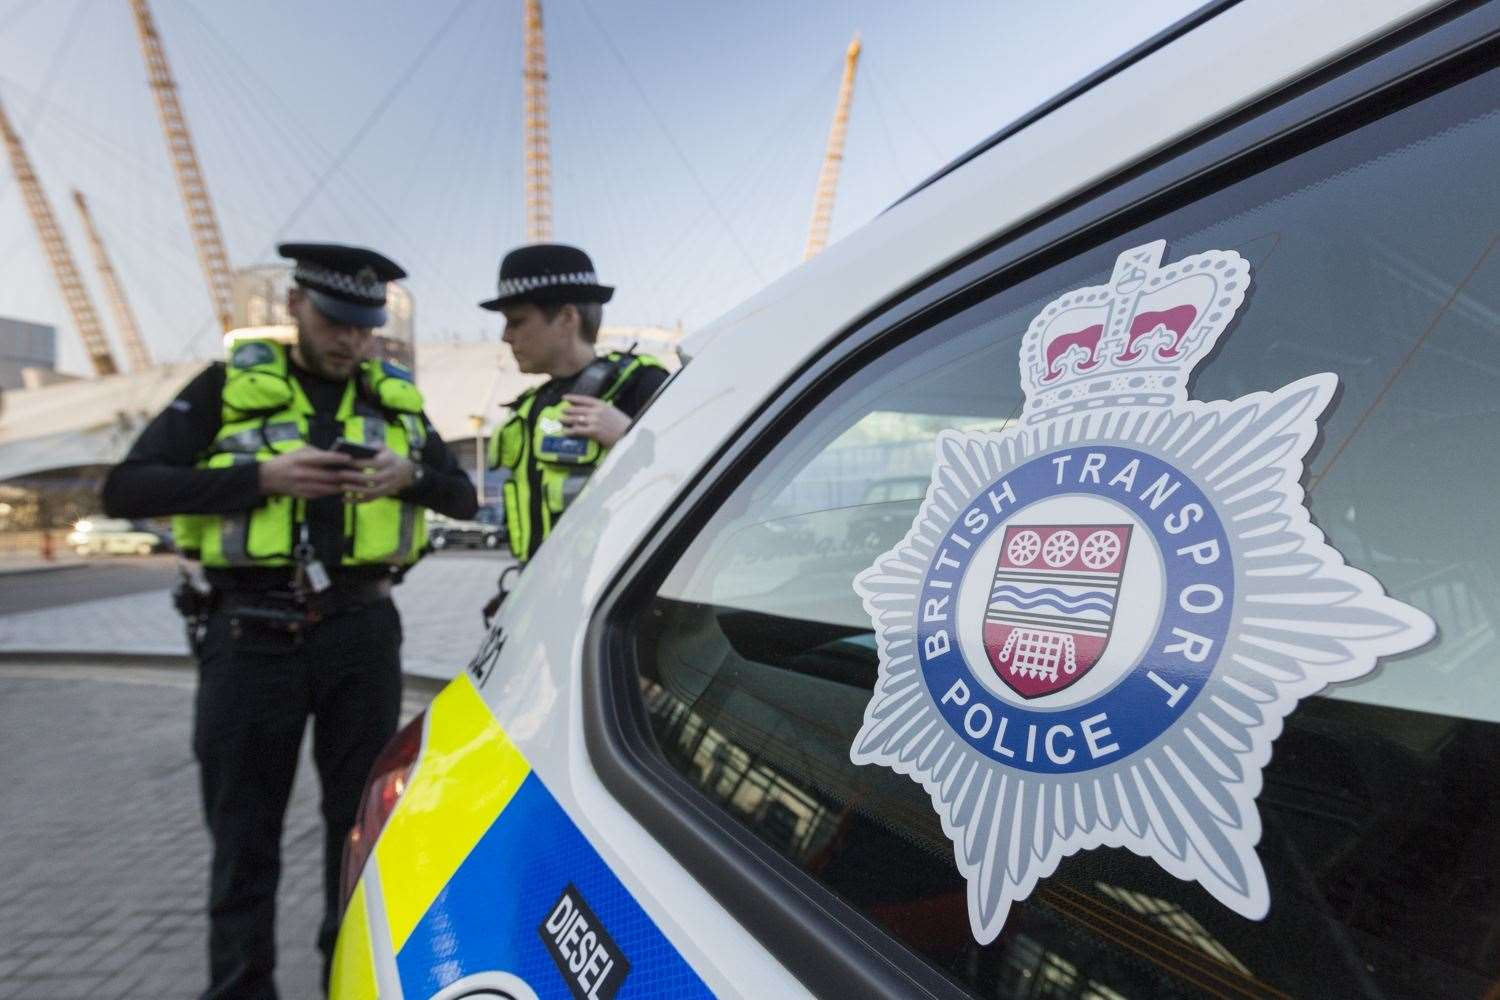 Six Youngsters Taken Home By Transport Police After